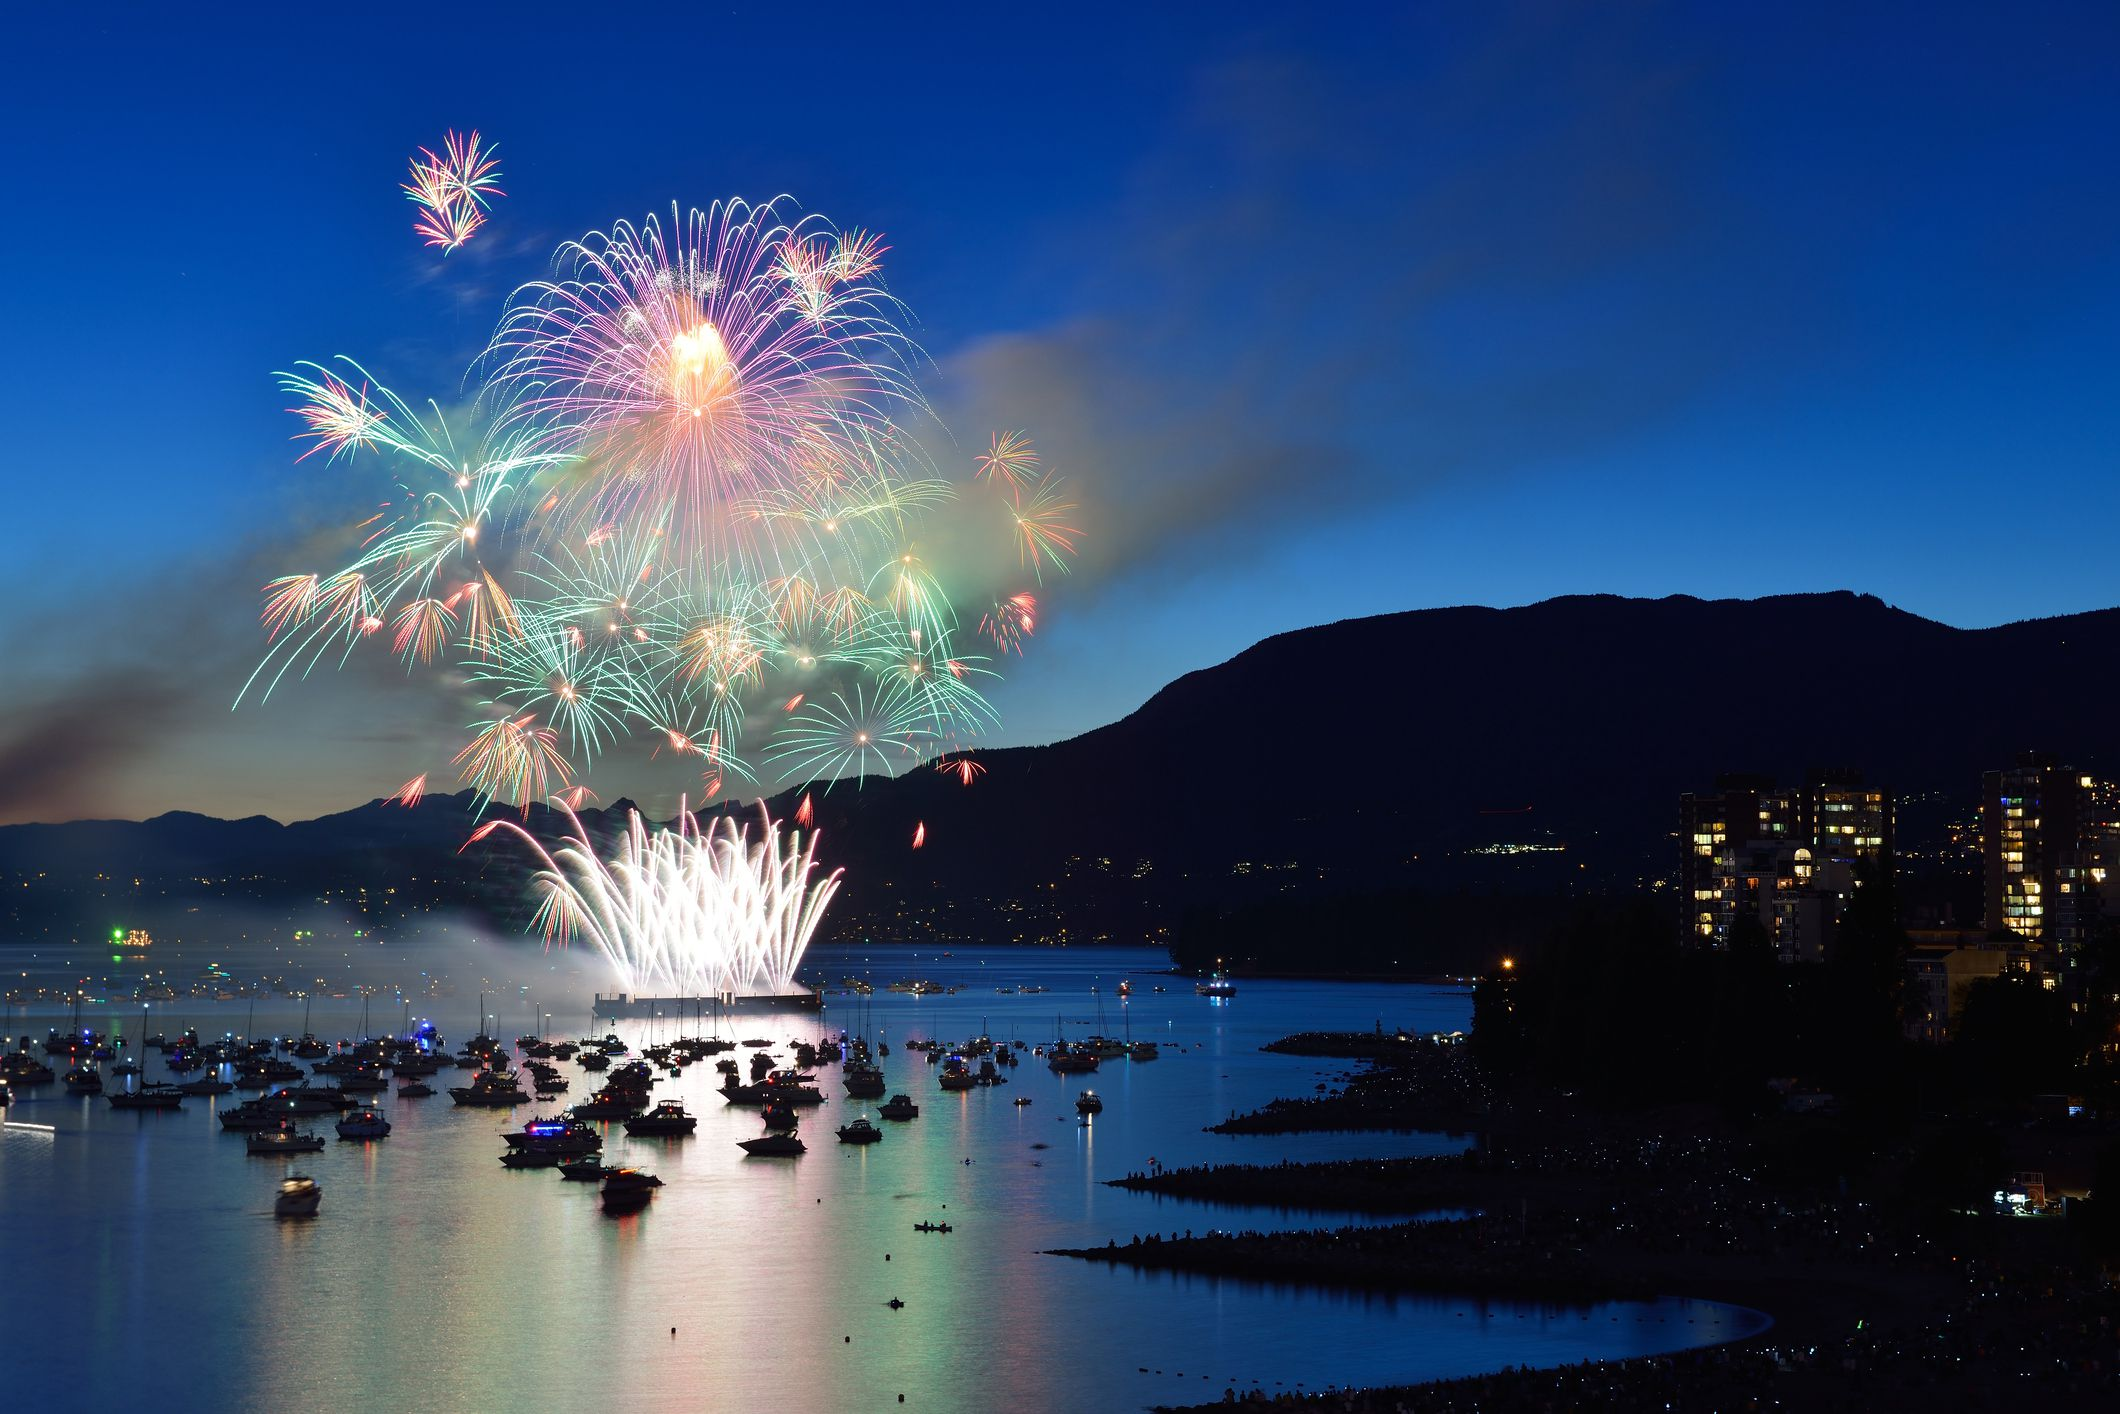 Vancouver Celebration of Light Fireworks Viewing Locations